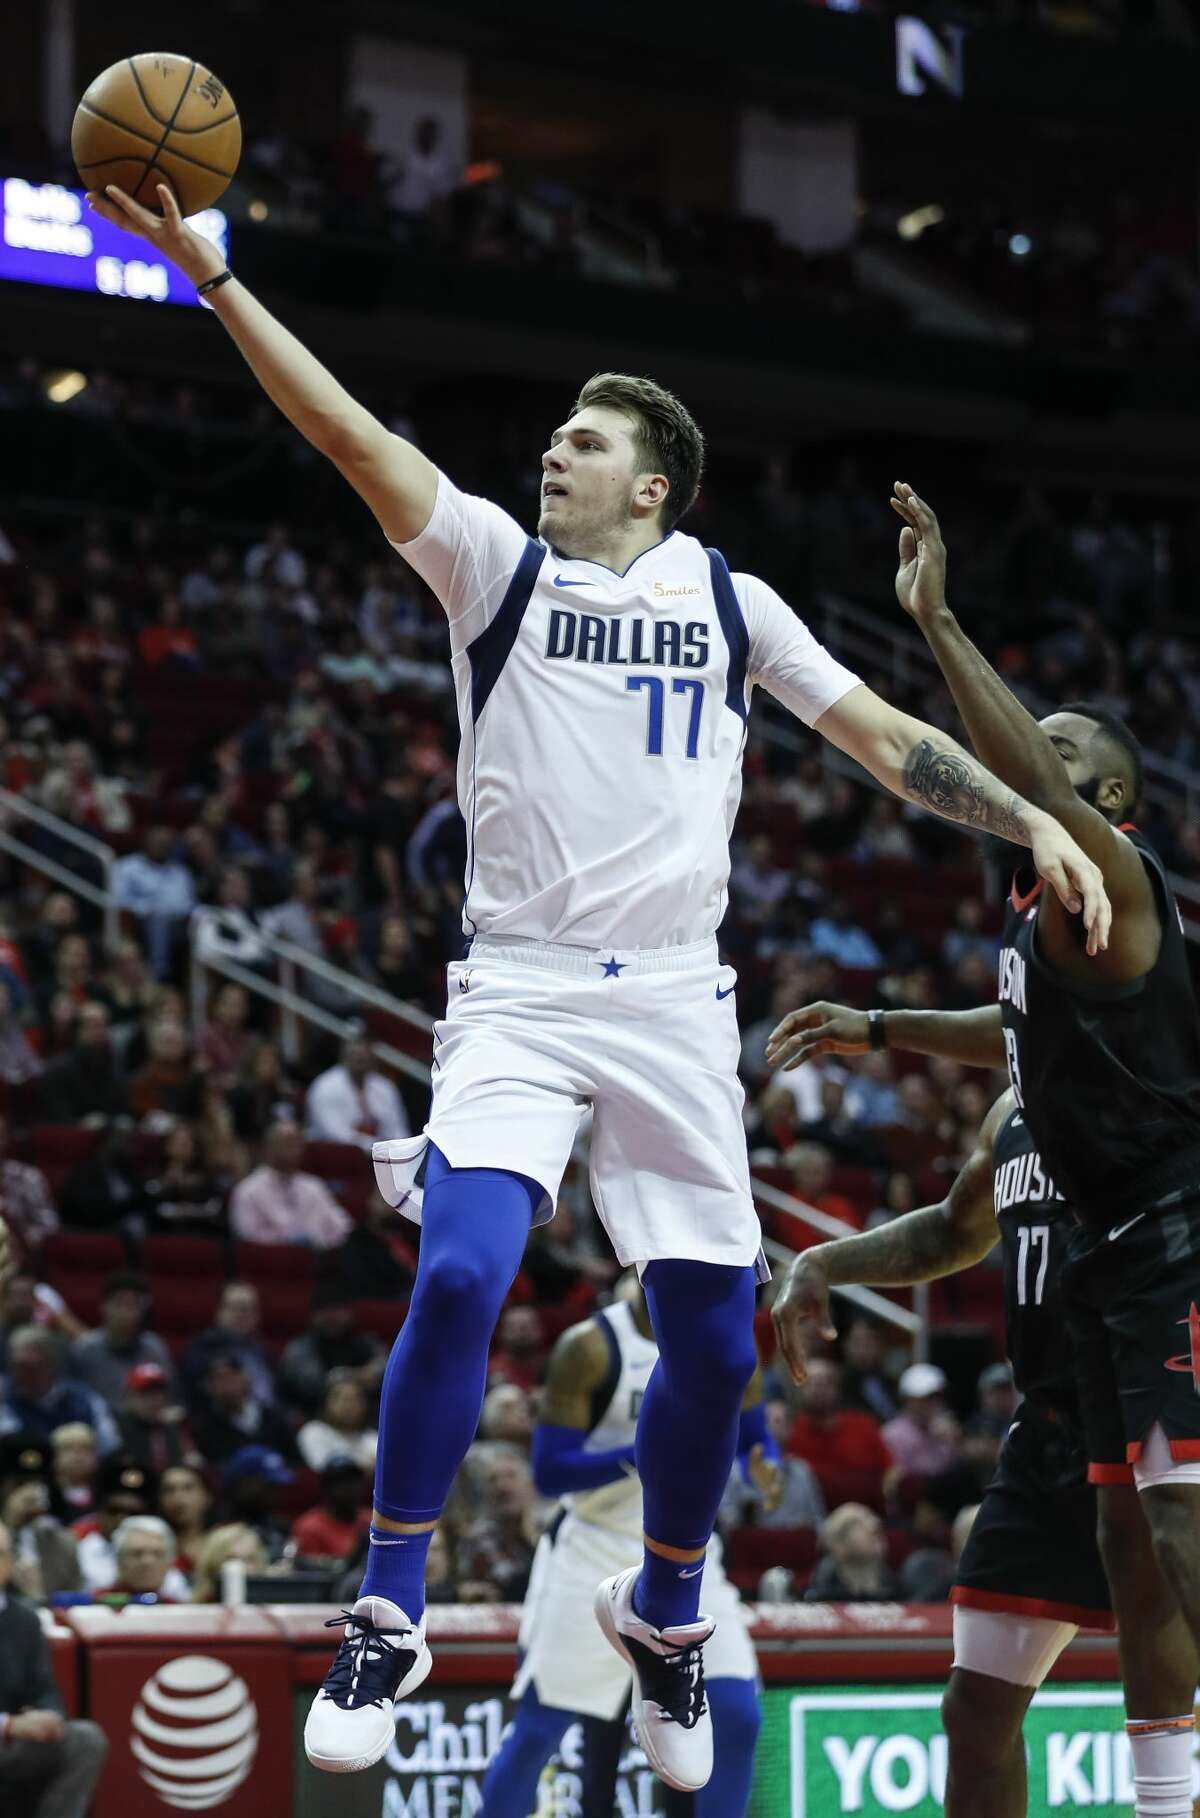 Dallas Mavericks forward Luka Doncic (77) shoots a layup after driving past Houston Rockets guard James Harden (13) during the second half of an NBA basketball game at Toyota Center on Wednesday, Nov. 28, 2018, in Houston.